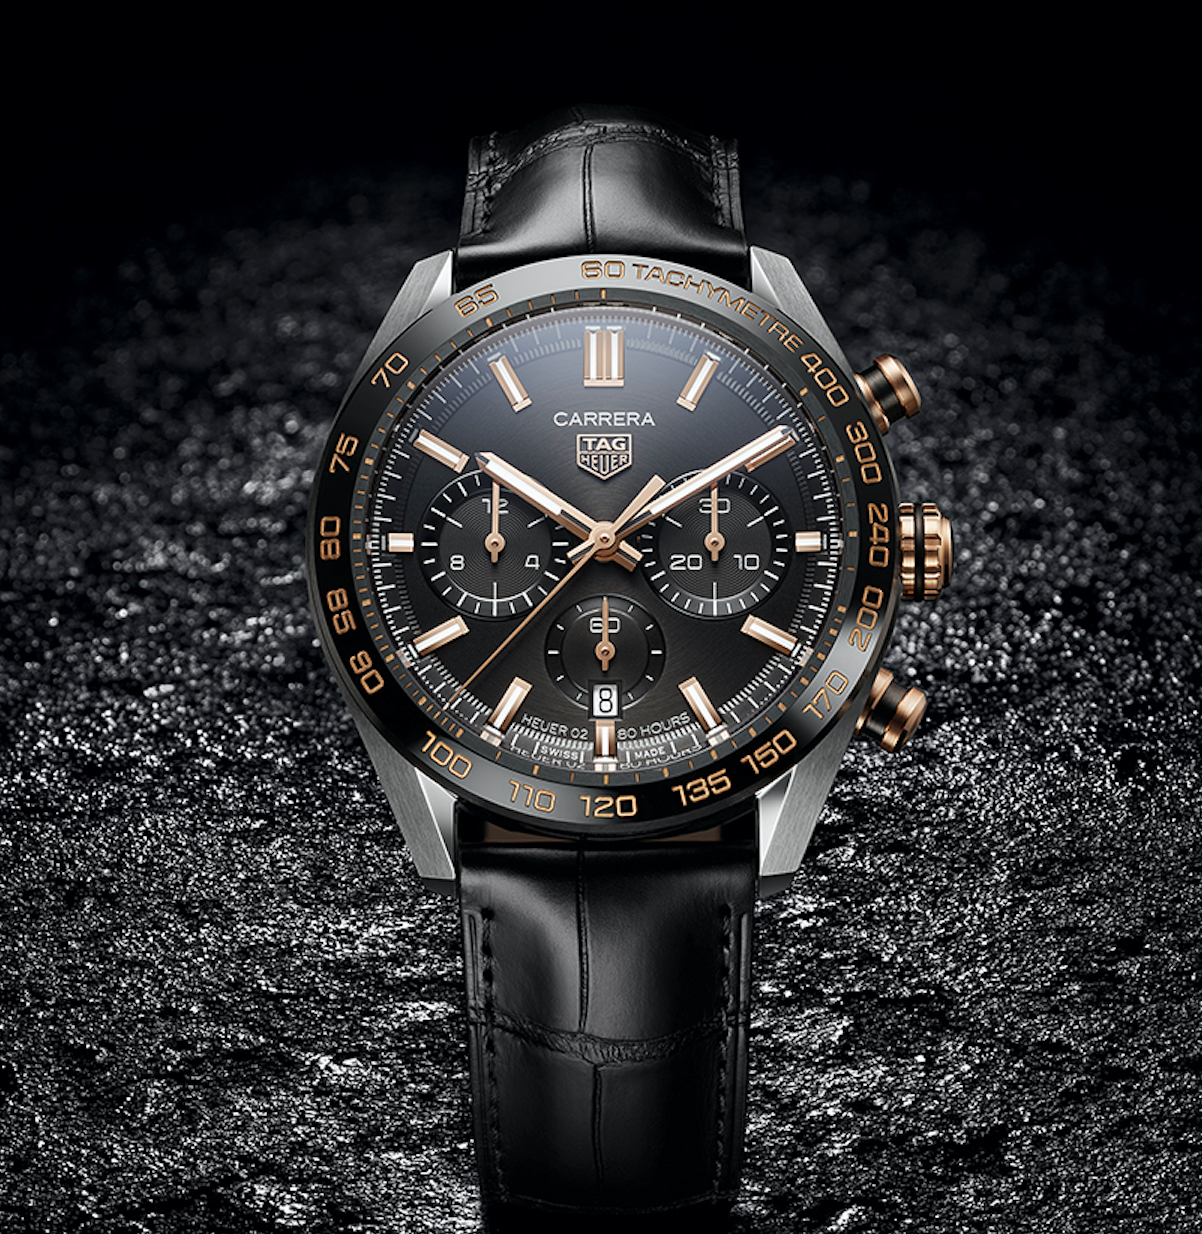 INTRODUCING: The TAG Heuer Carrera Chrono Sport